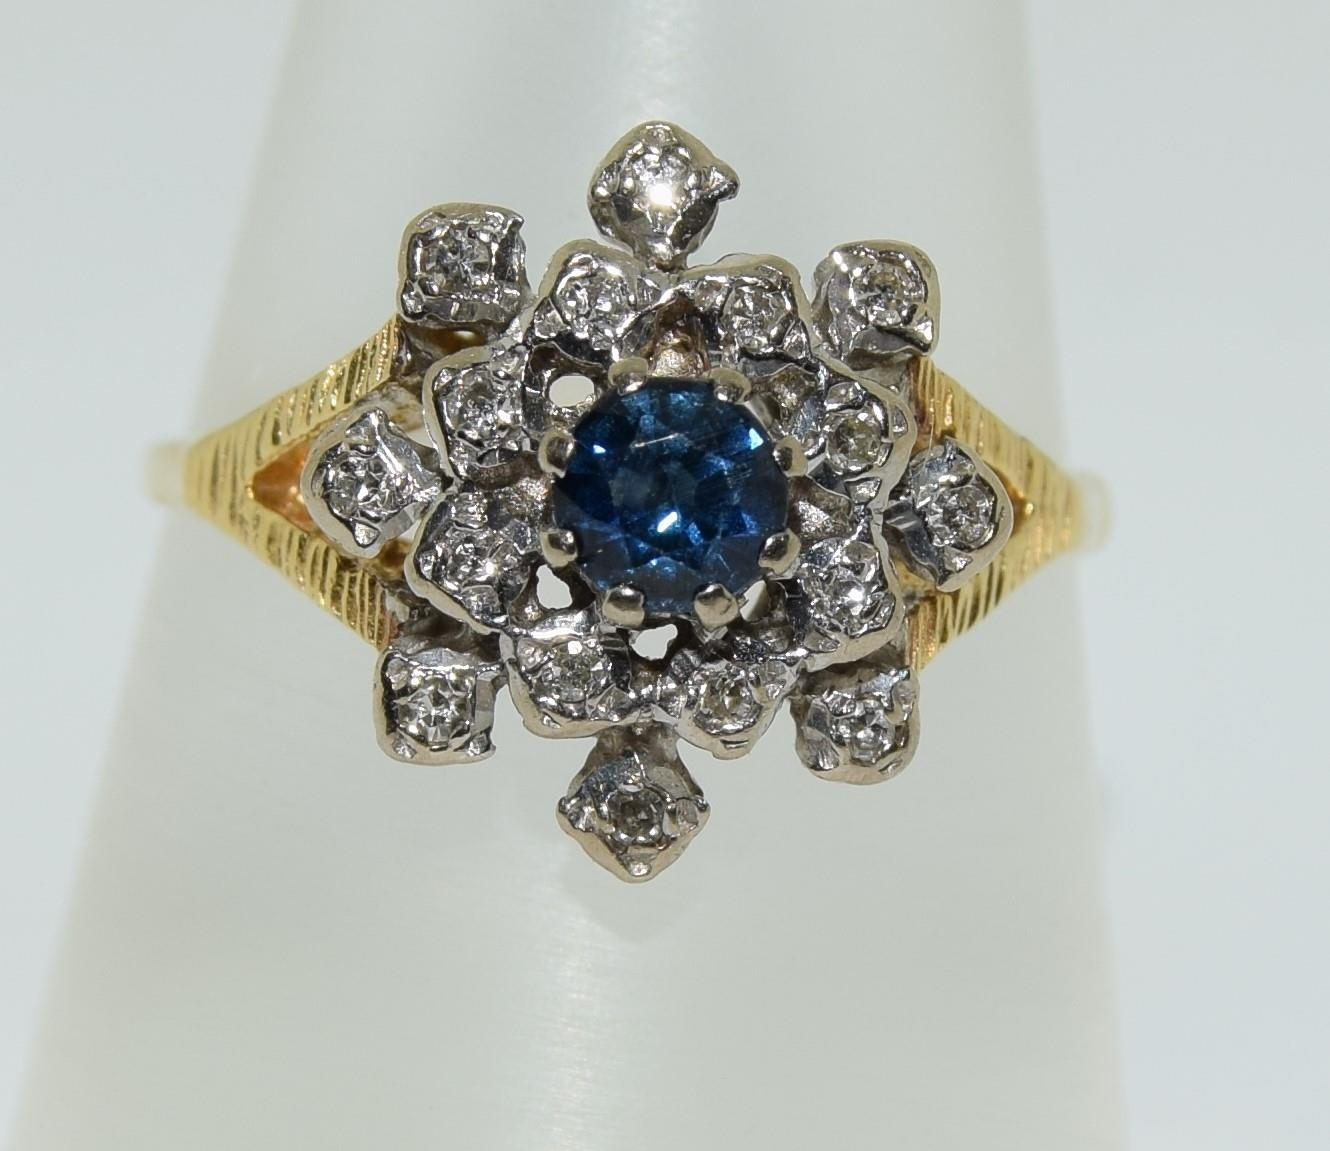 18ct gold diamond and sapphire ring - approx 0.80 dia. Size O.